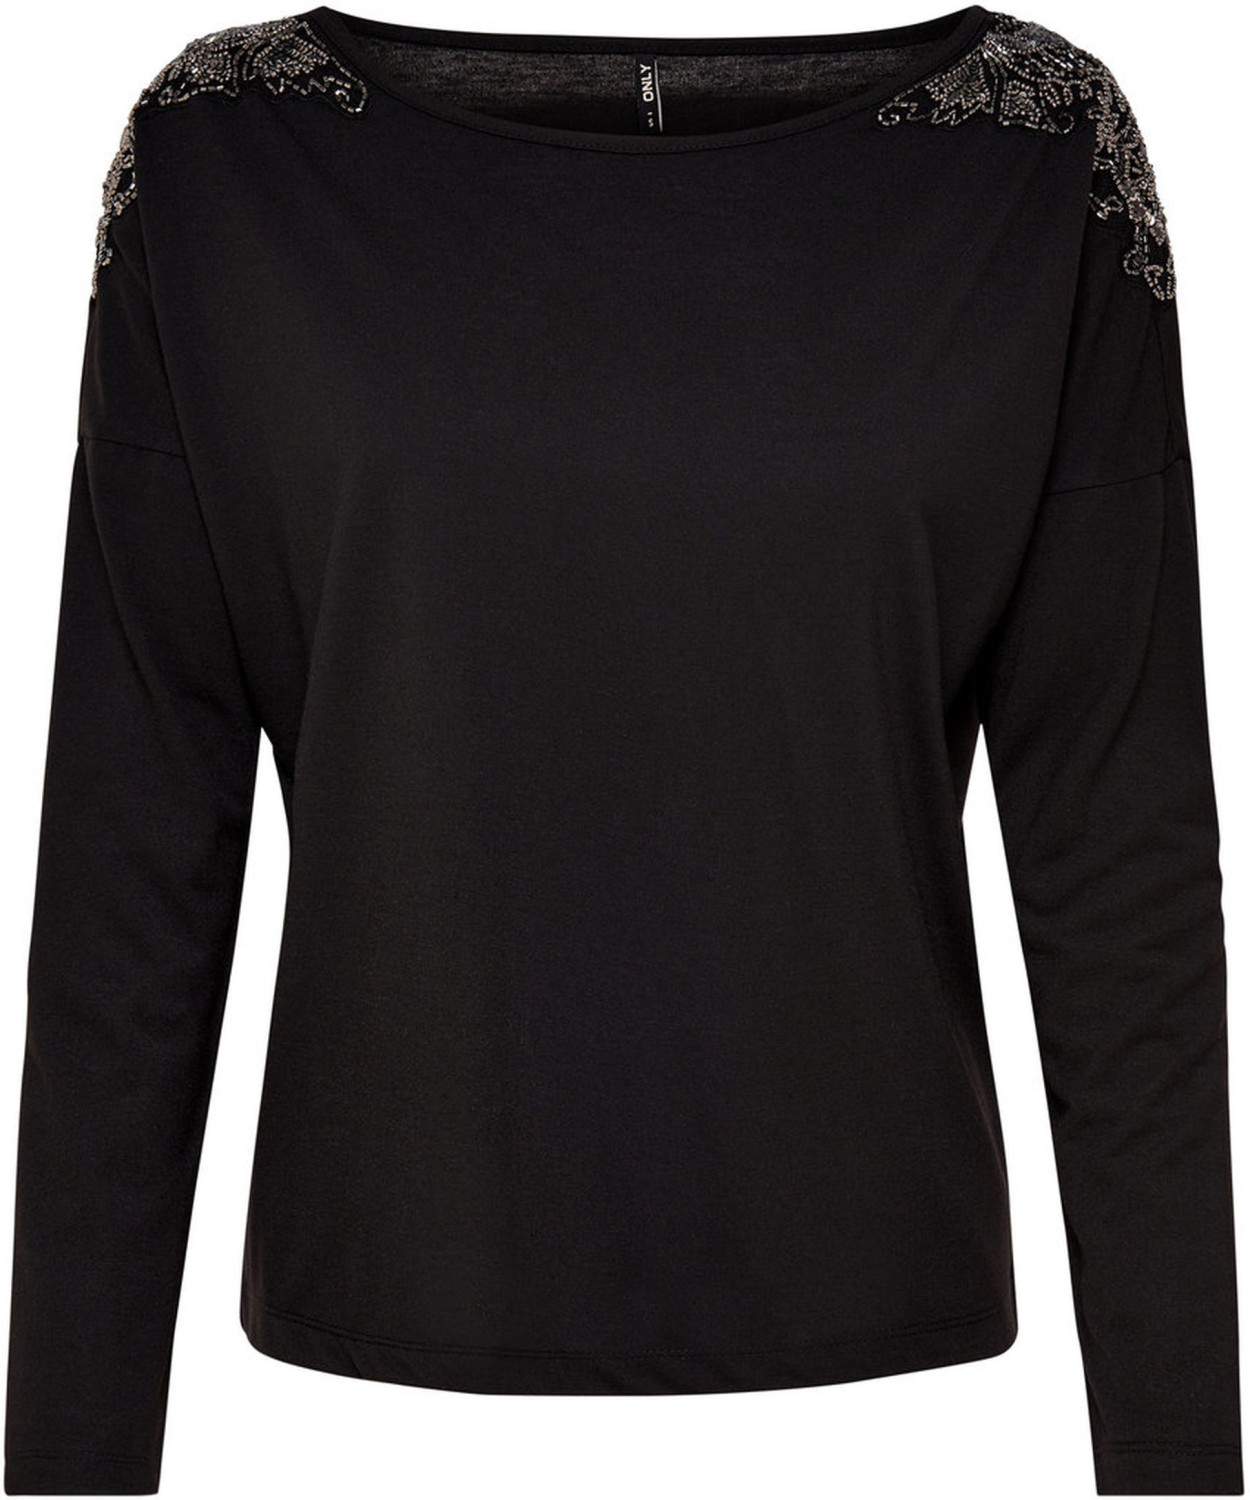 Only Detailed Long Sleeved Top (15146483)